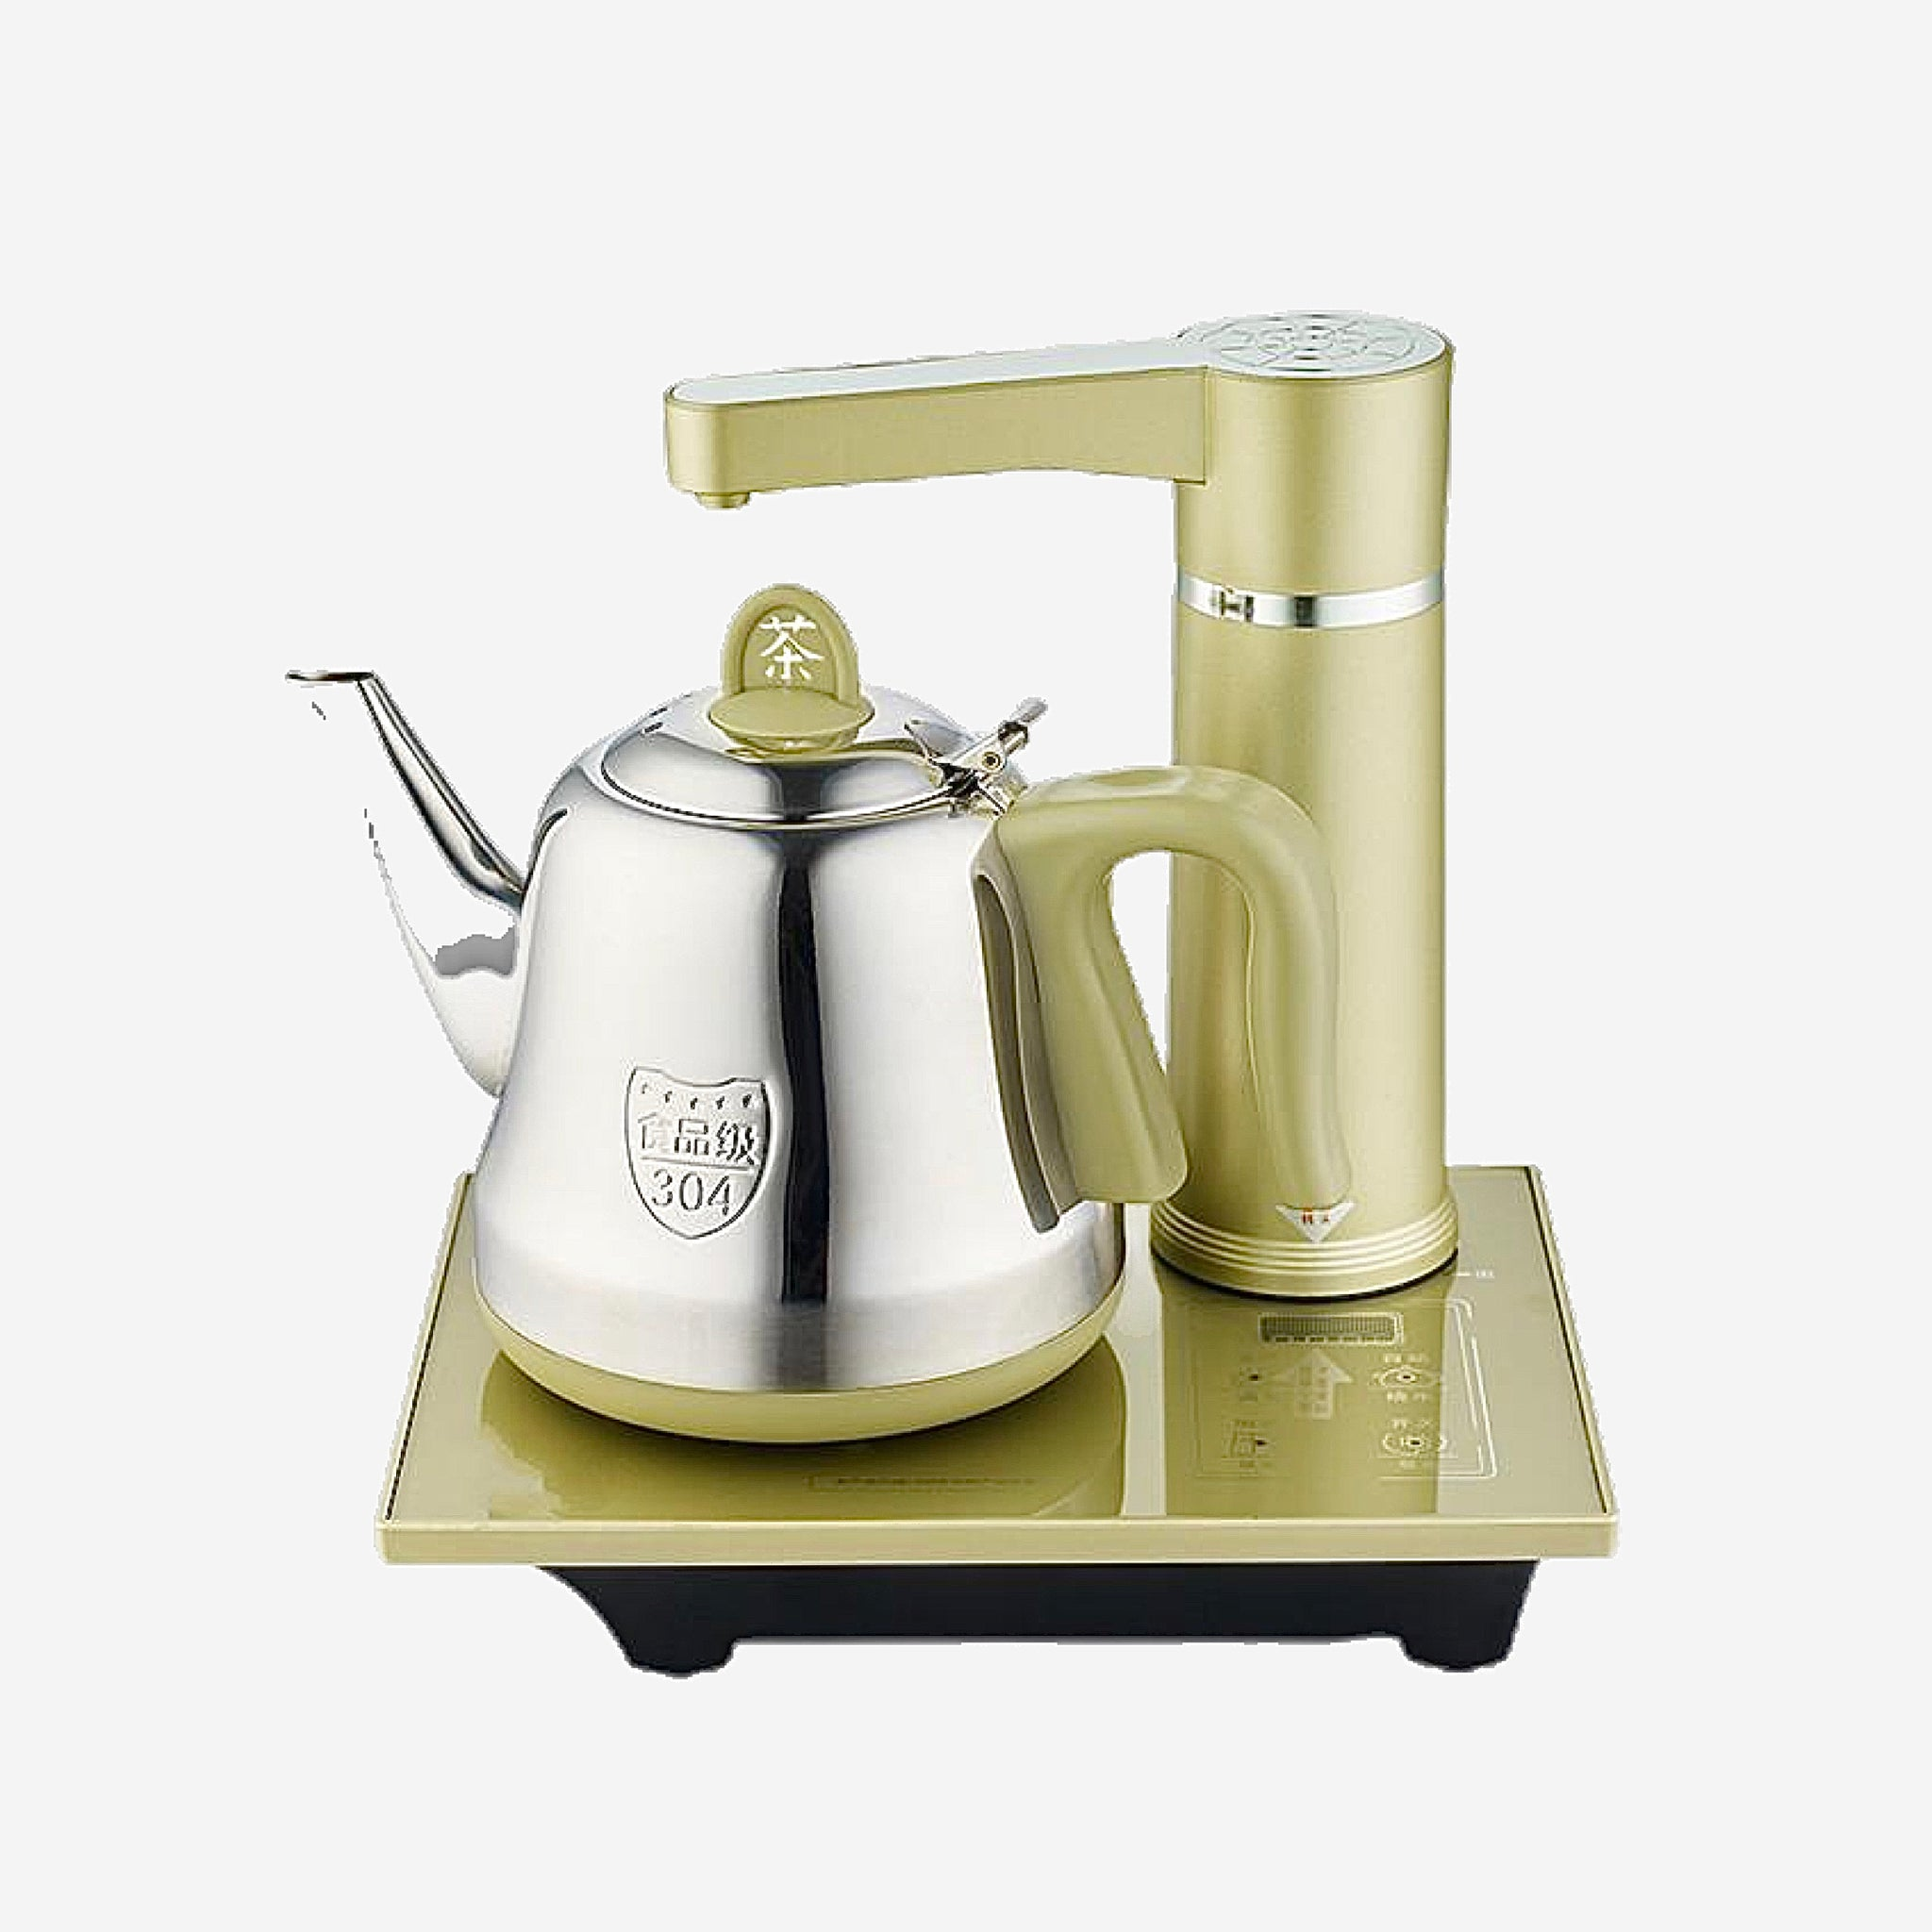 Automatic Water Electric Teakettle Set 304 stainless steel faucet pump sets Trending